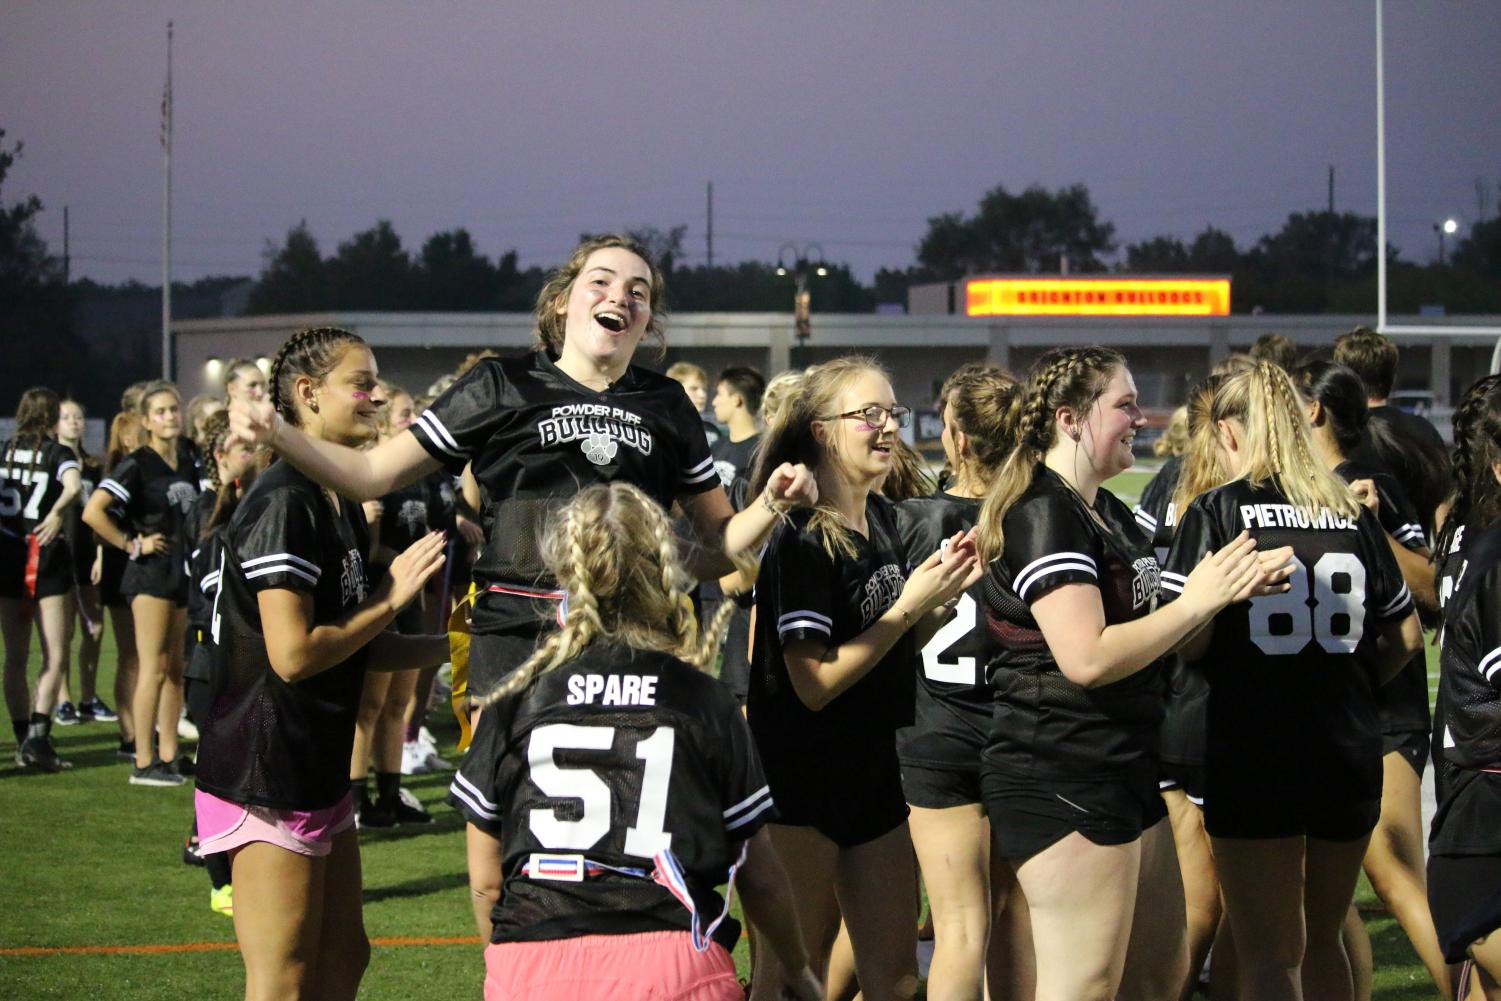 Senior girls celebrate a victory in the 2019 Powder Puff game.